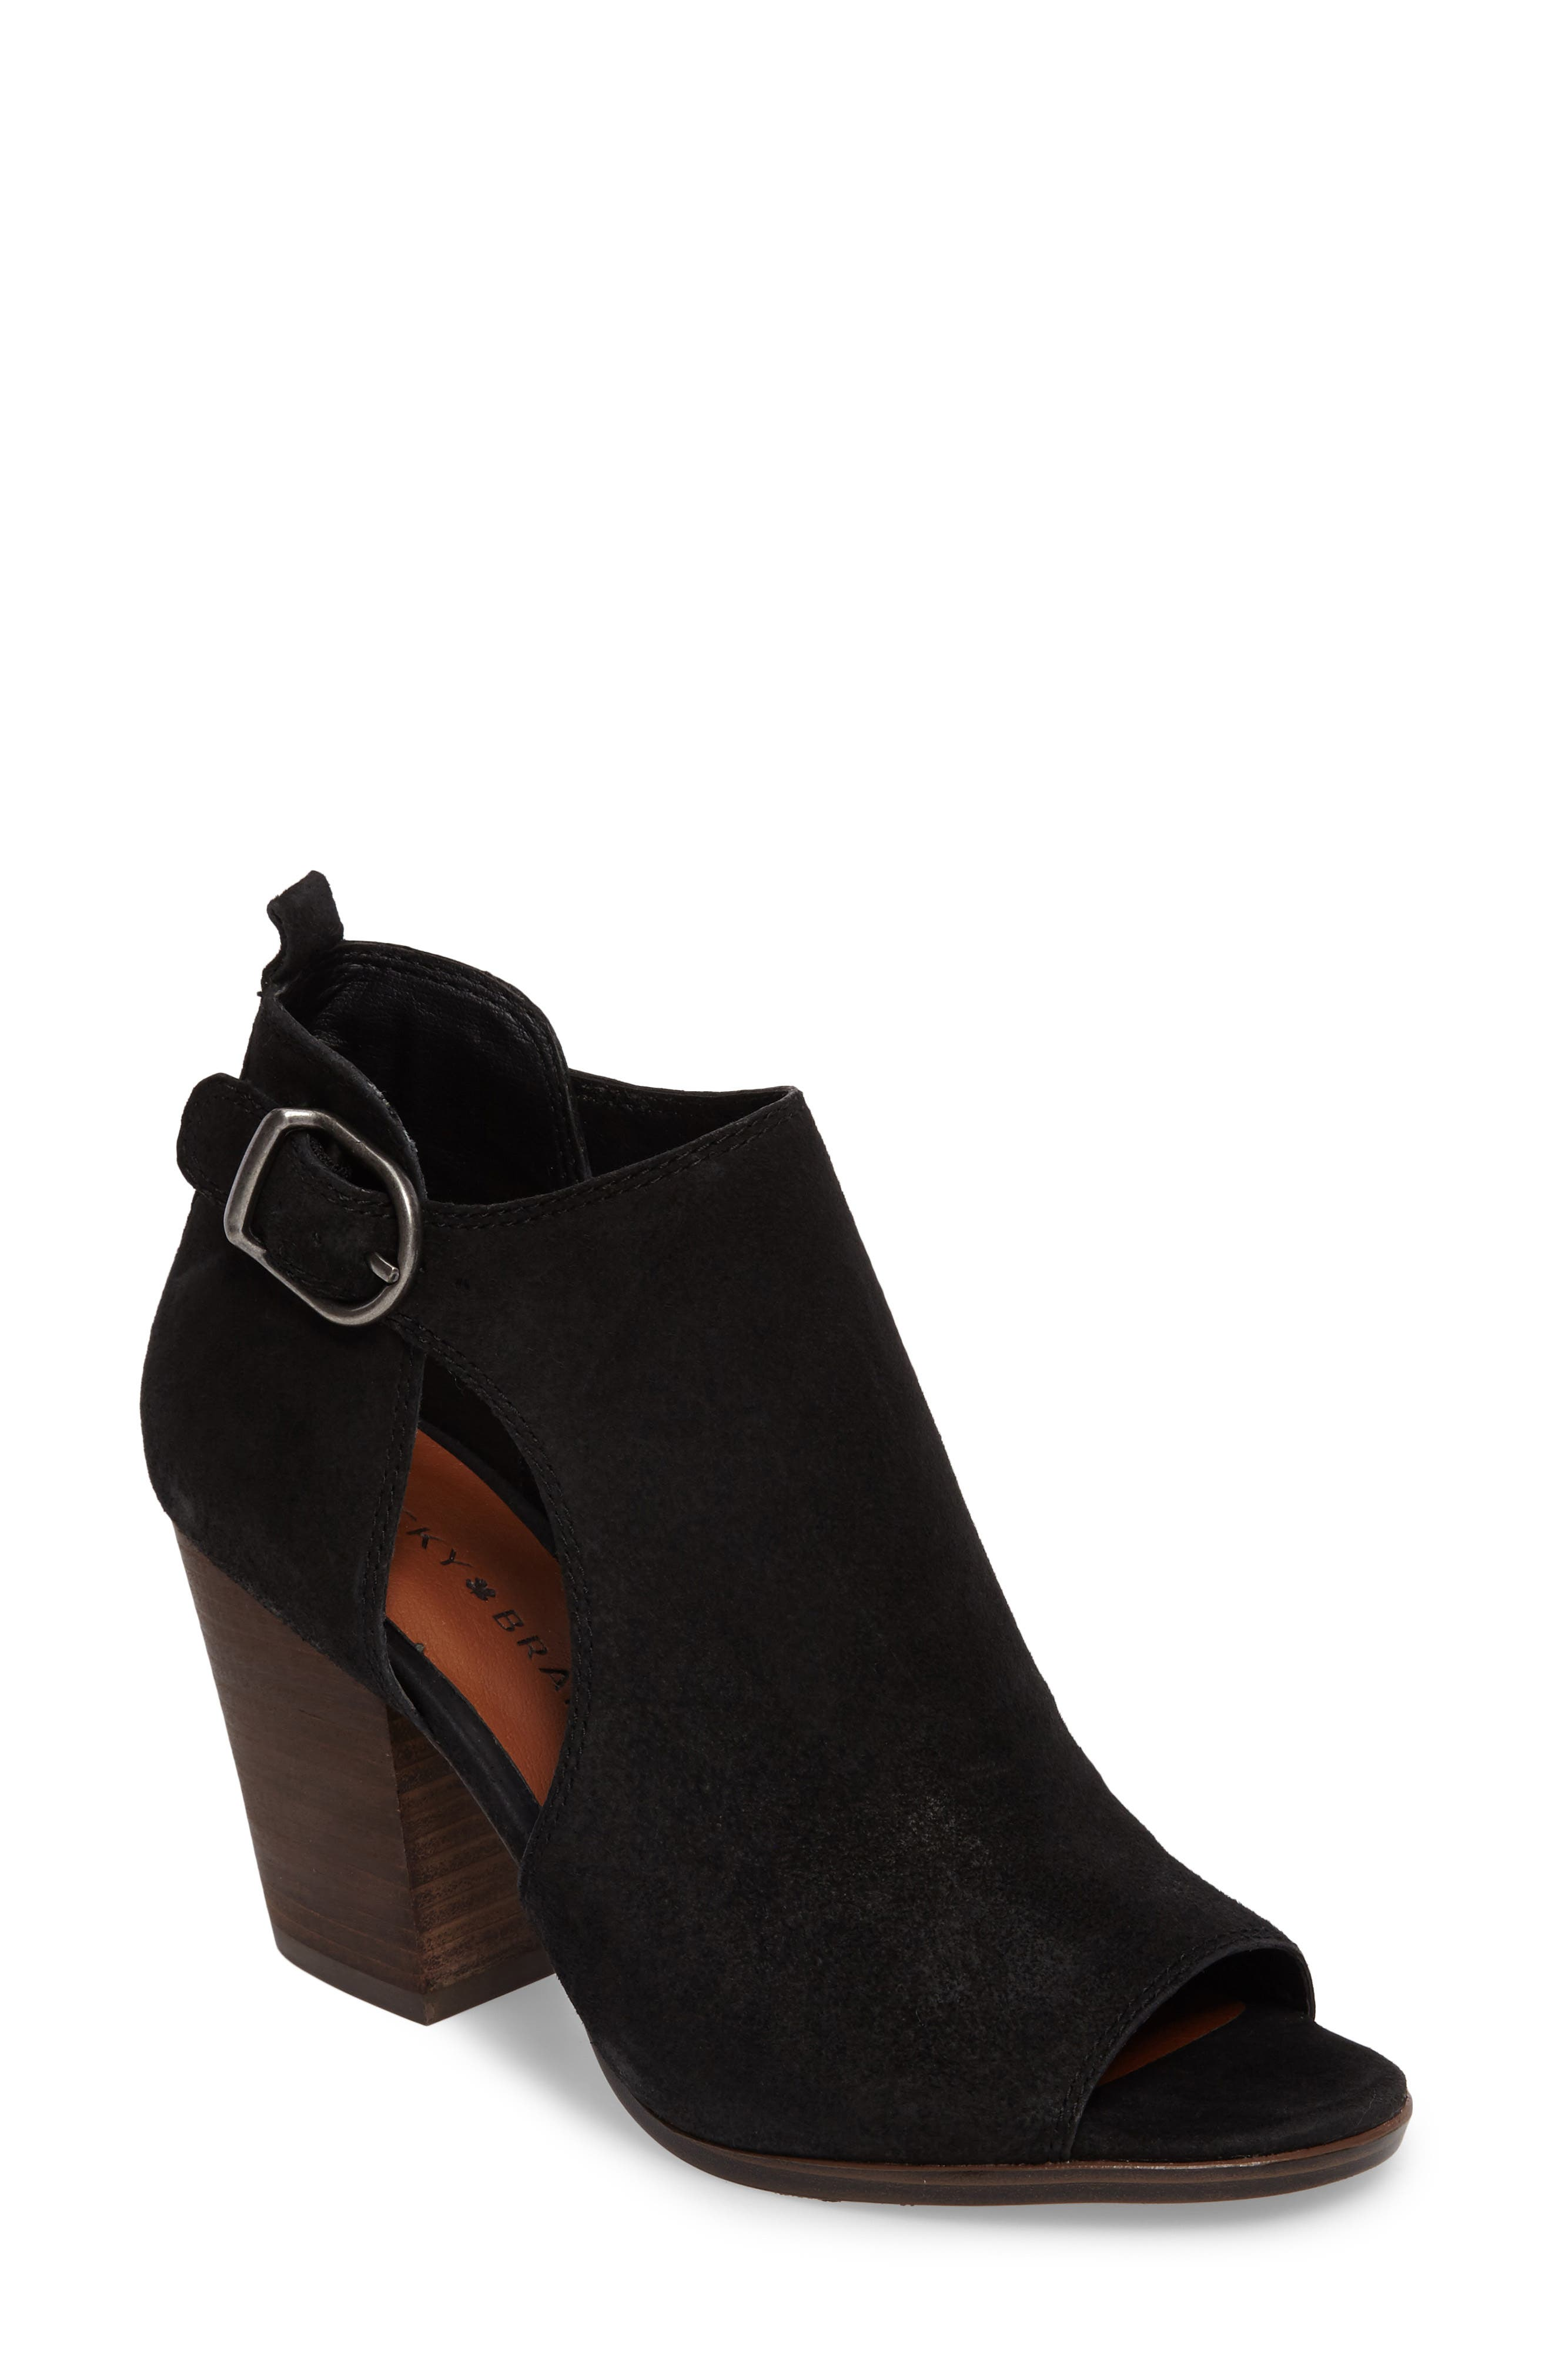 LUCKY BRAND Oona Open Side Bootie, Main, color, 001